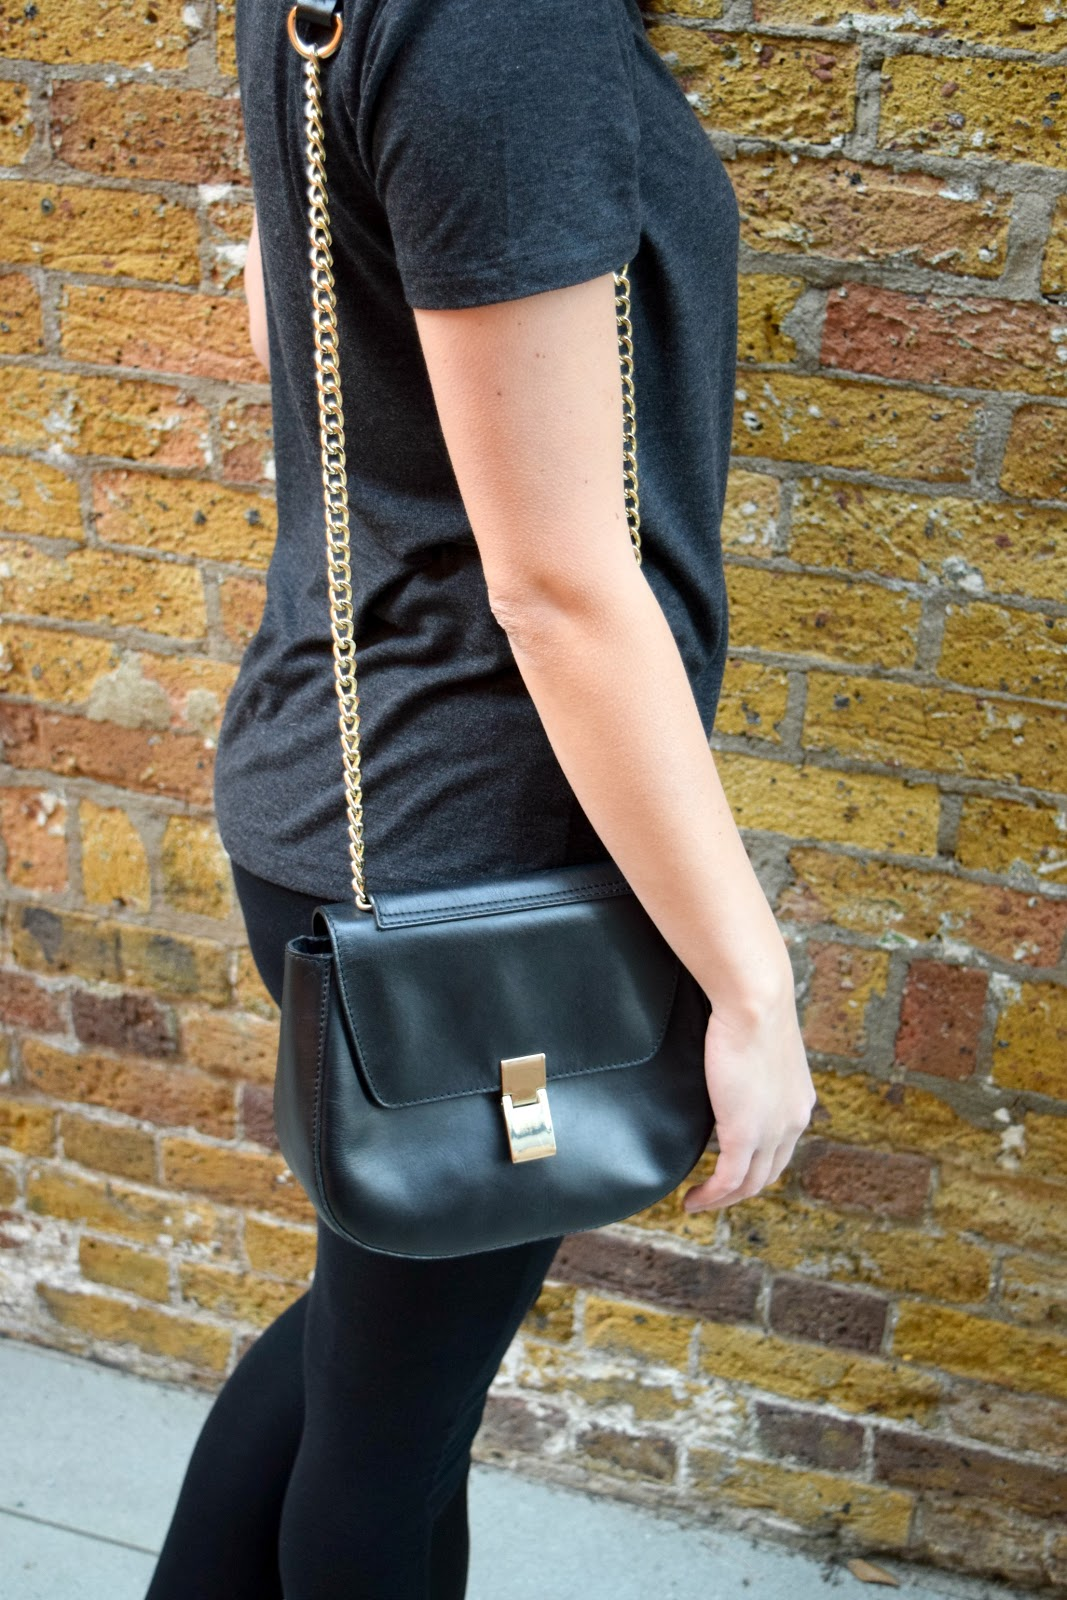 ASOS saddle handbag